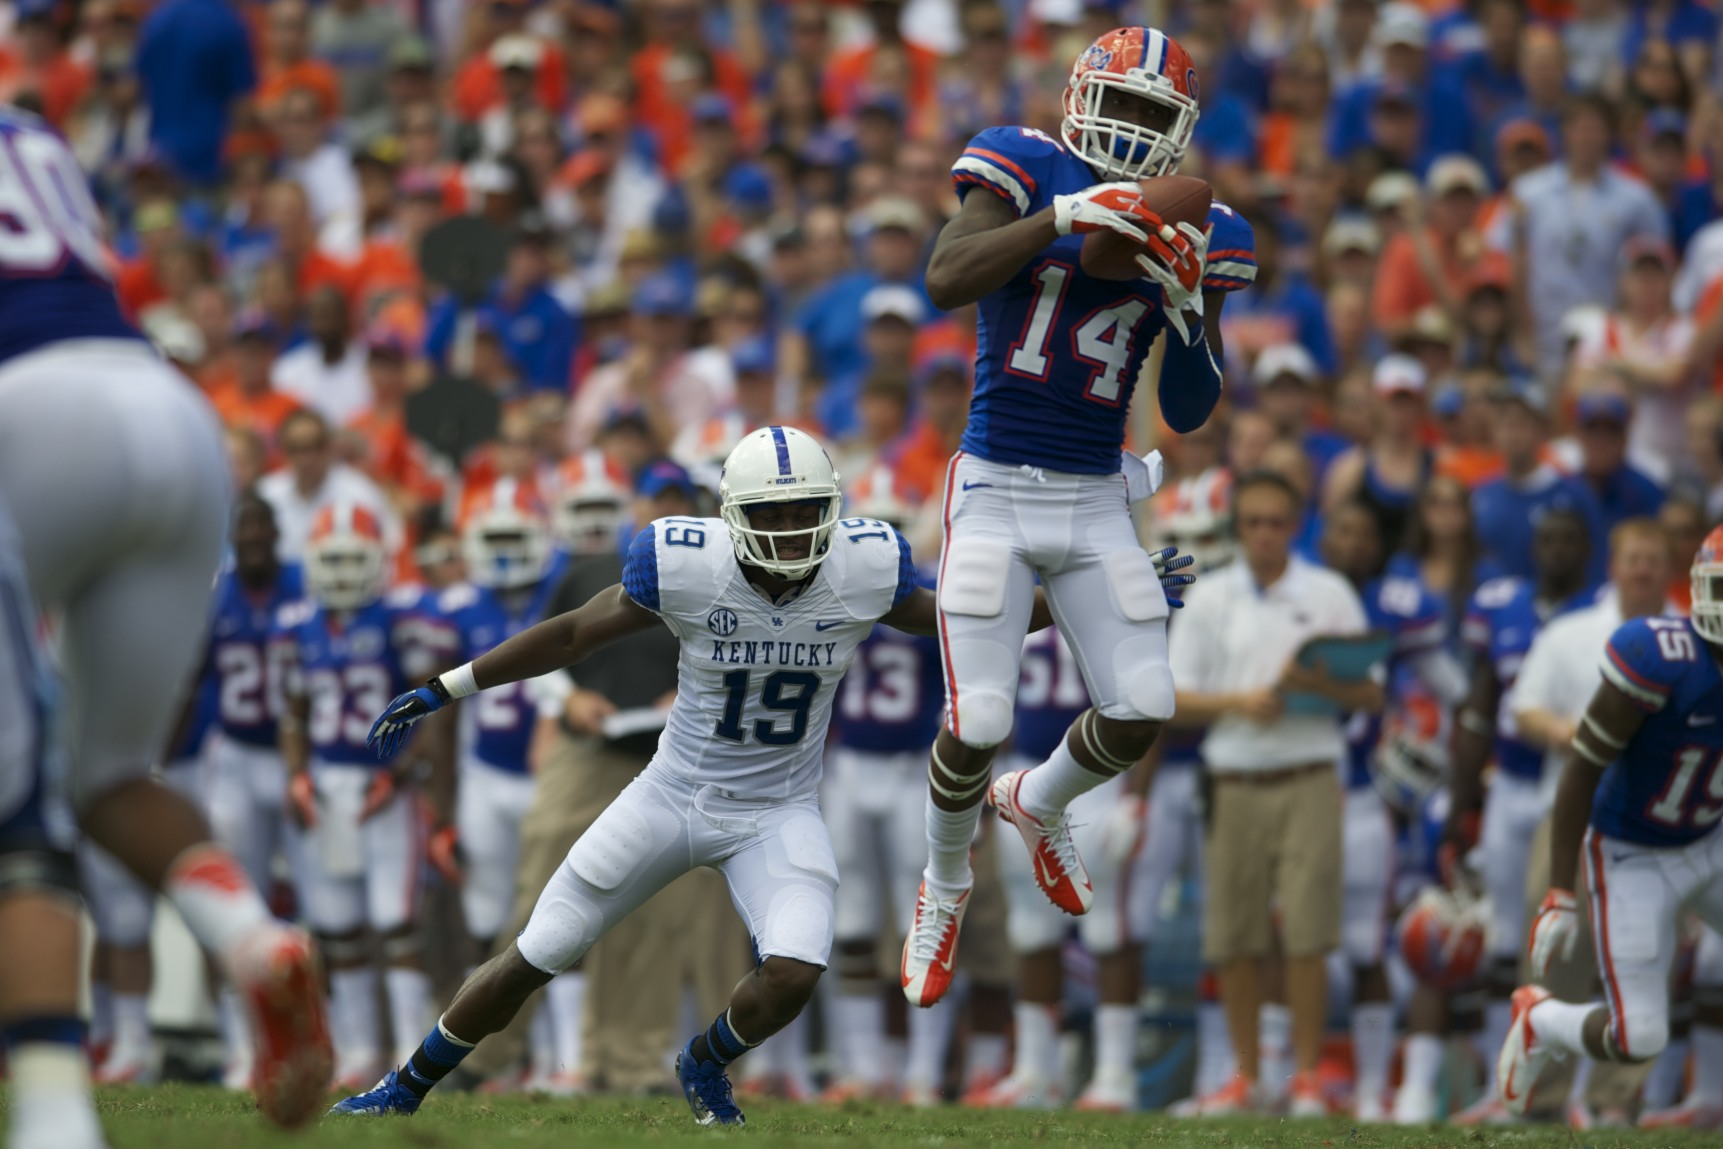 Jaylen Watkins of the Florida Gators has a 26-yard interception return for a touchdown in the first half.